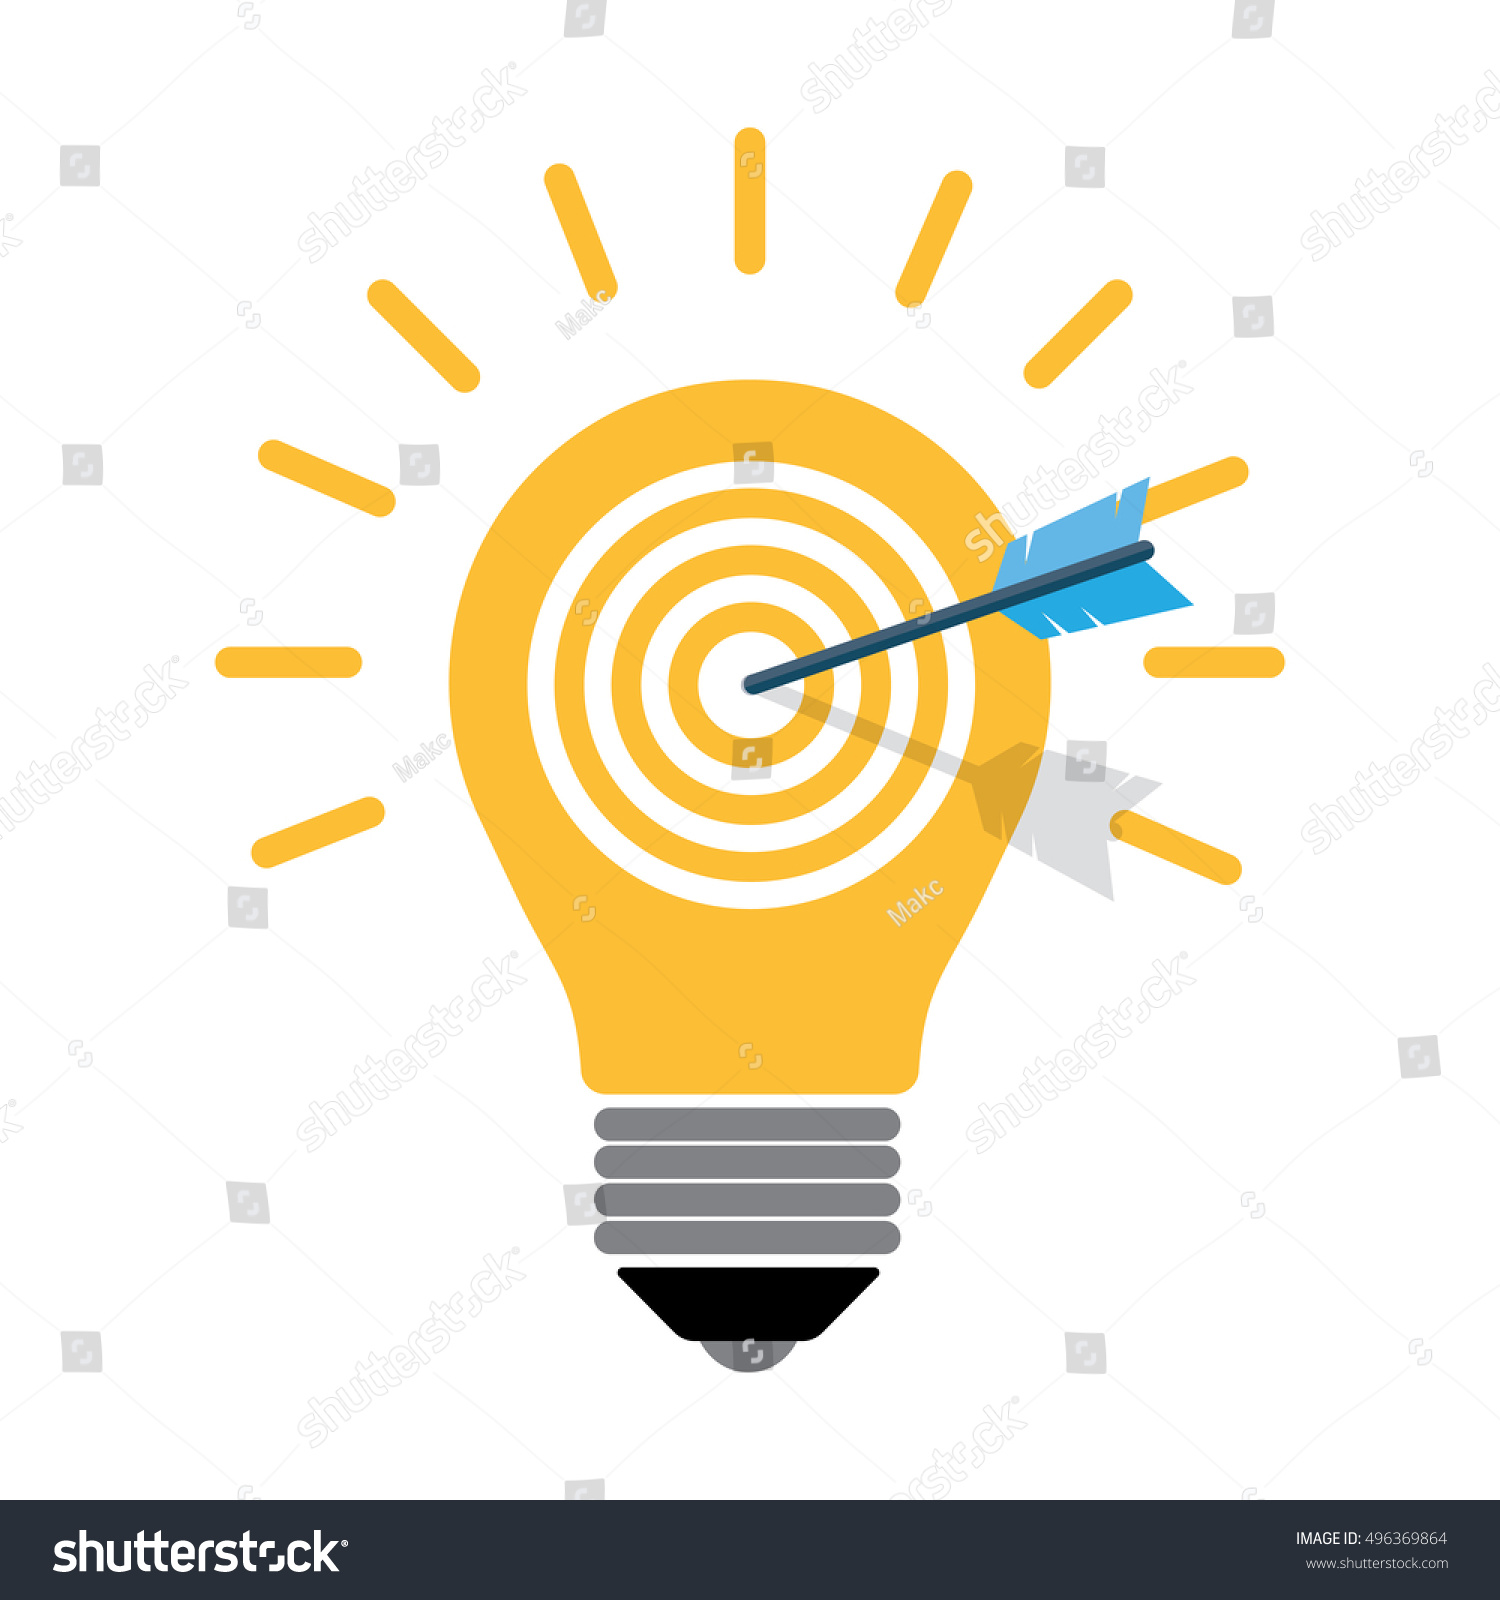 Concept idea light bulb arrow icon stock vector 496369864 shutterstock concept of idea light bulb and arrow icon vector illustration buycottarizona Choice Image